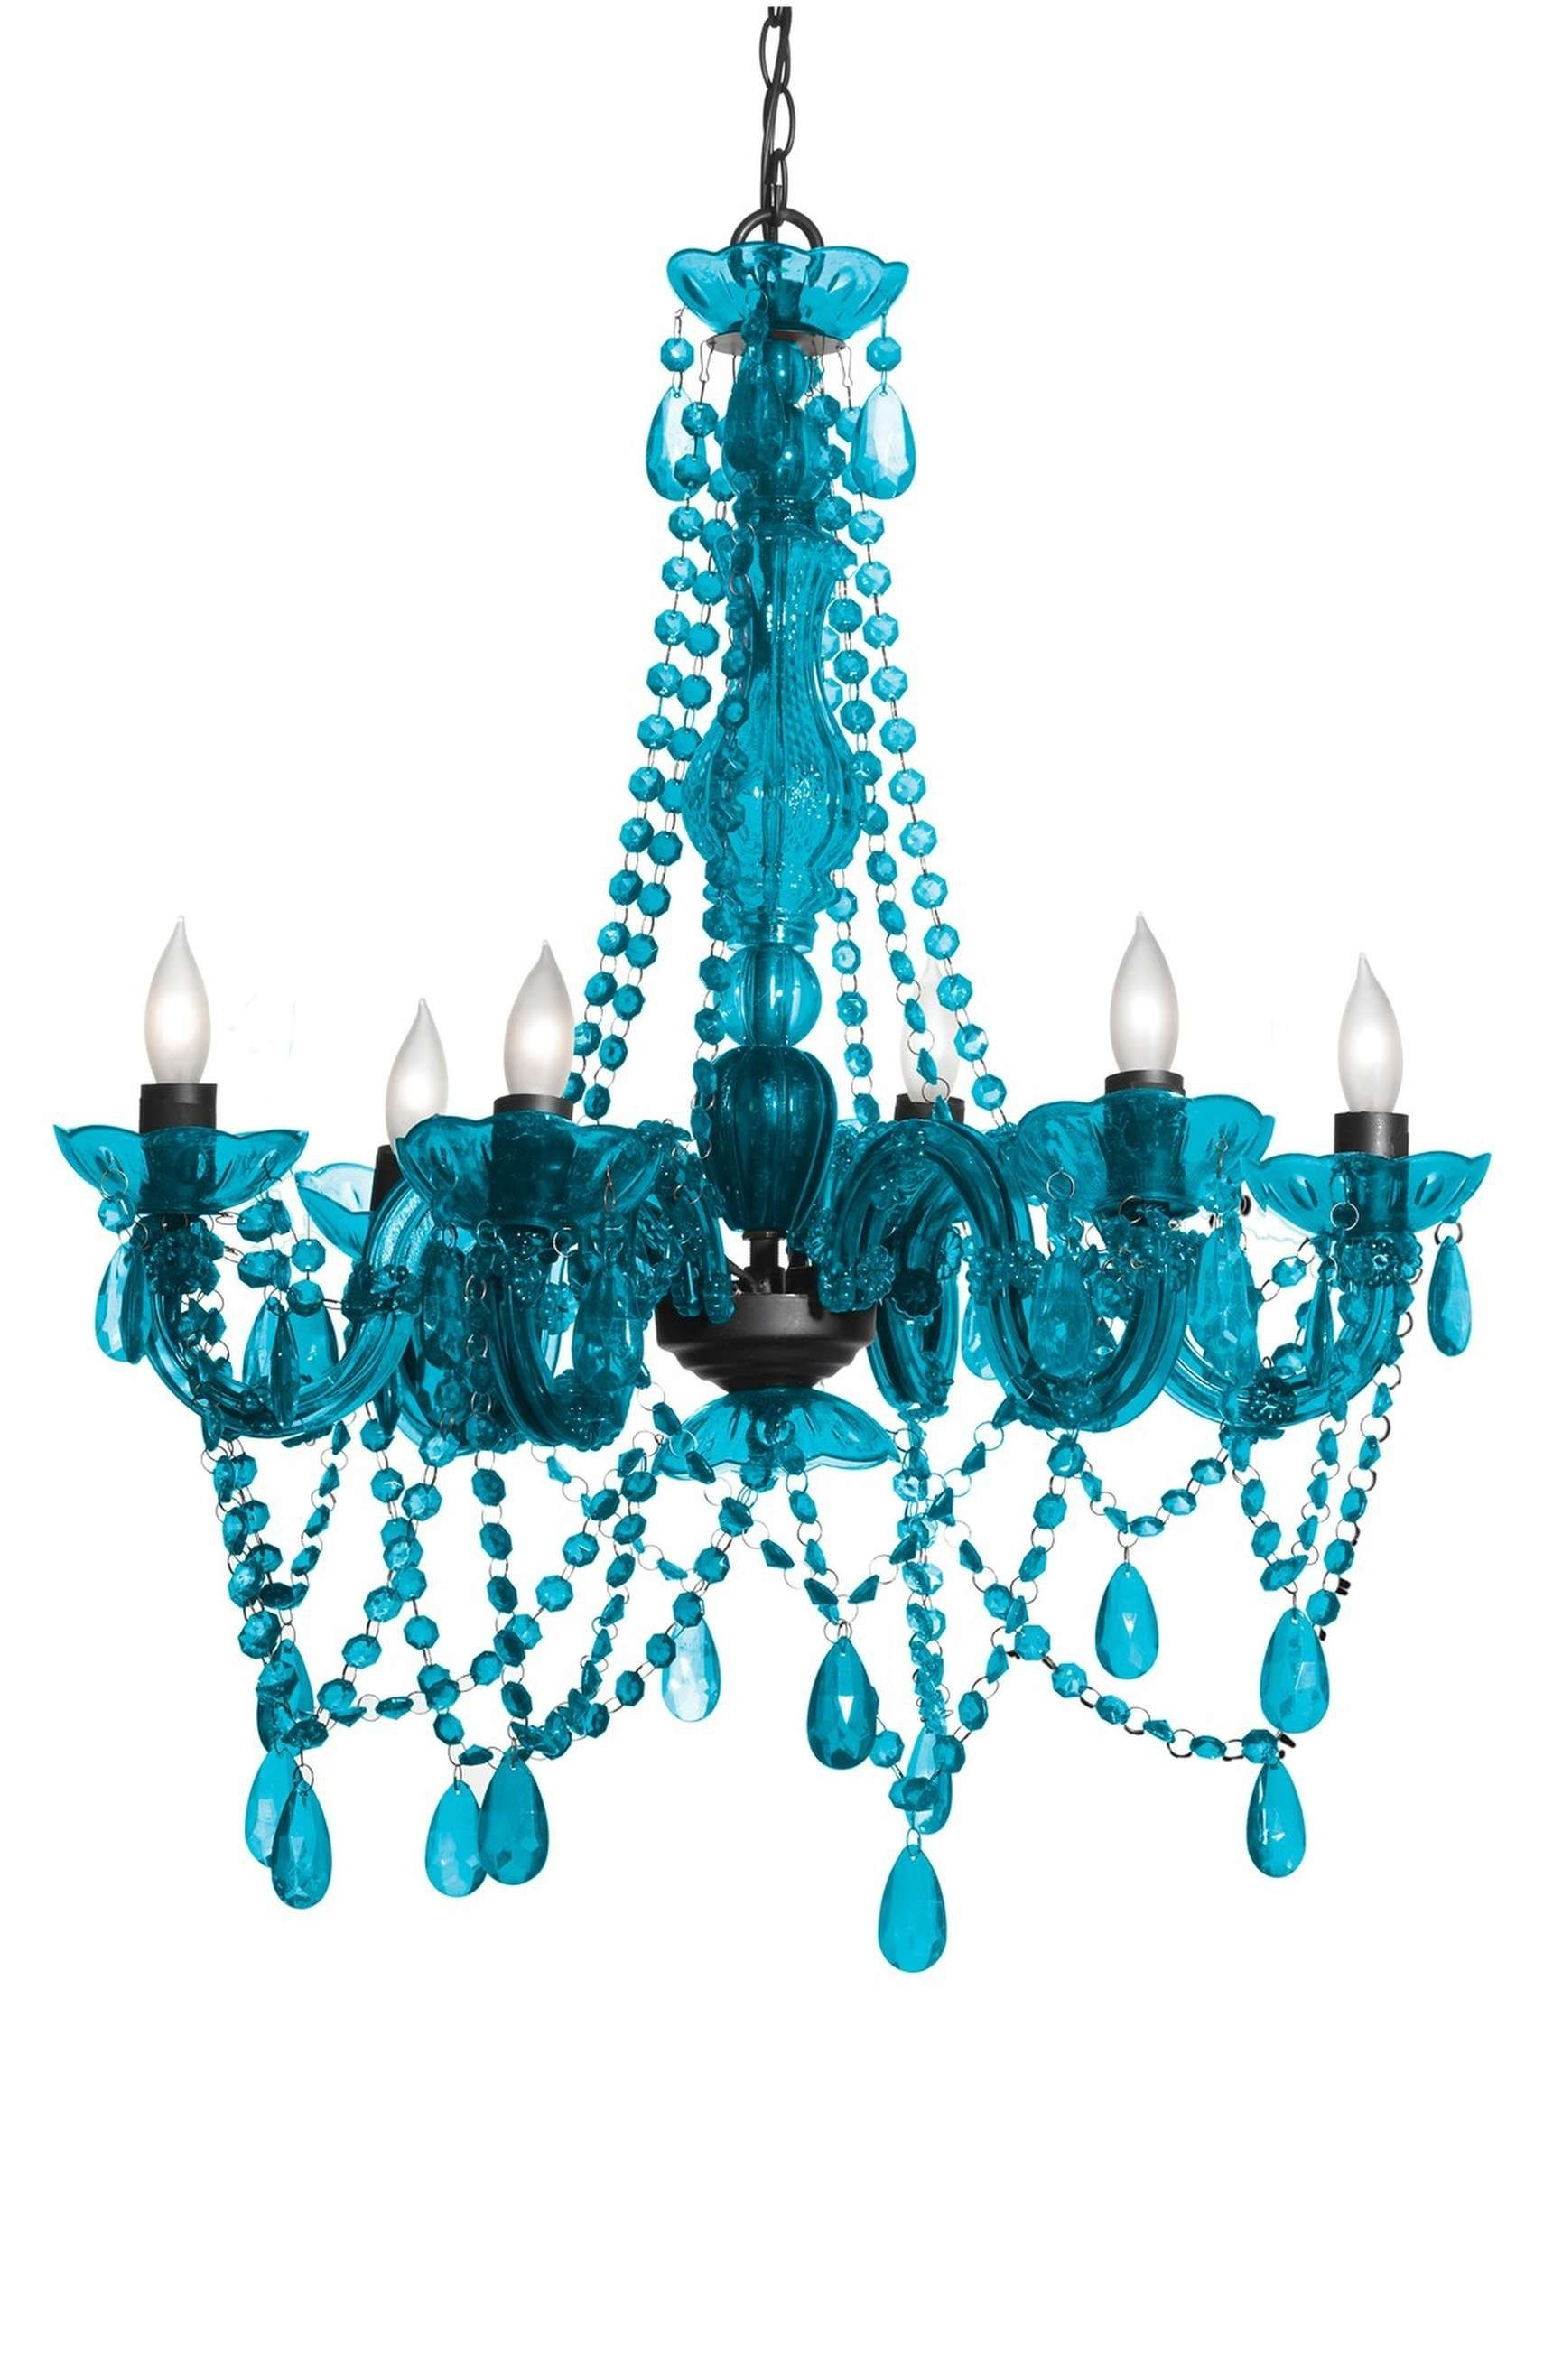 Turquoise Chandelier Crystals For Most Current Crystal Chandelier Designs – Modern Chandeliers (View 8 of 20)